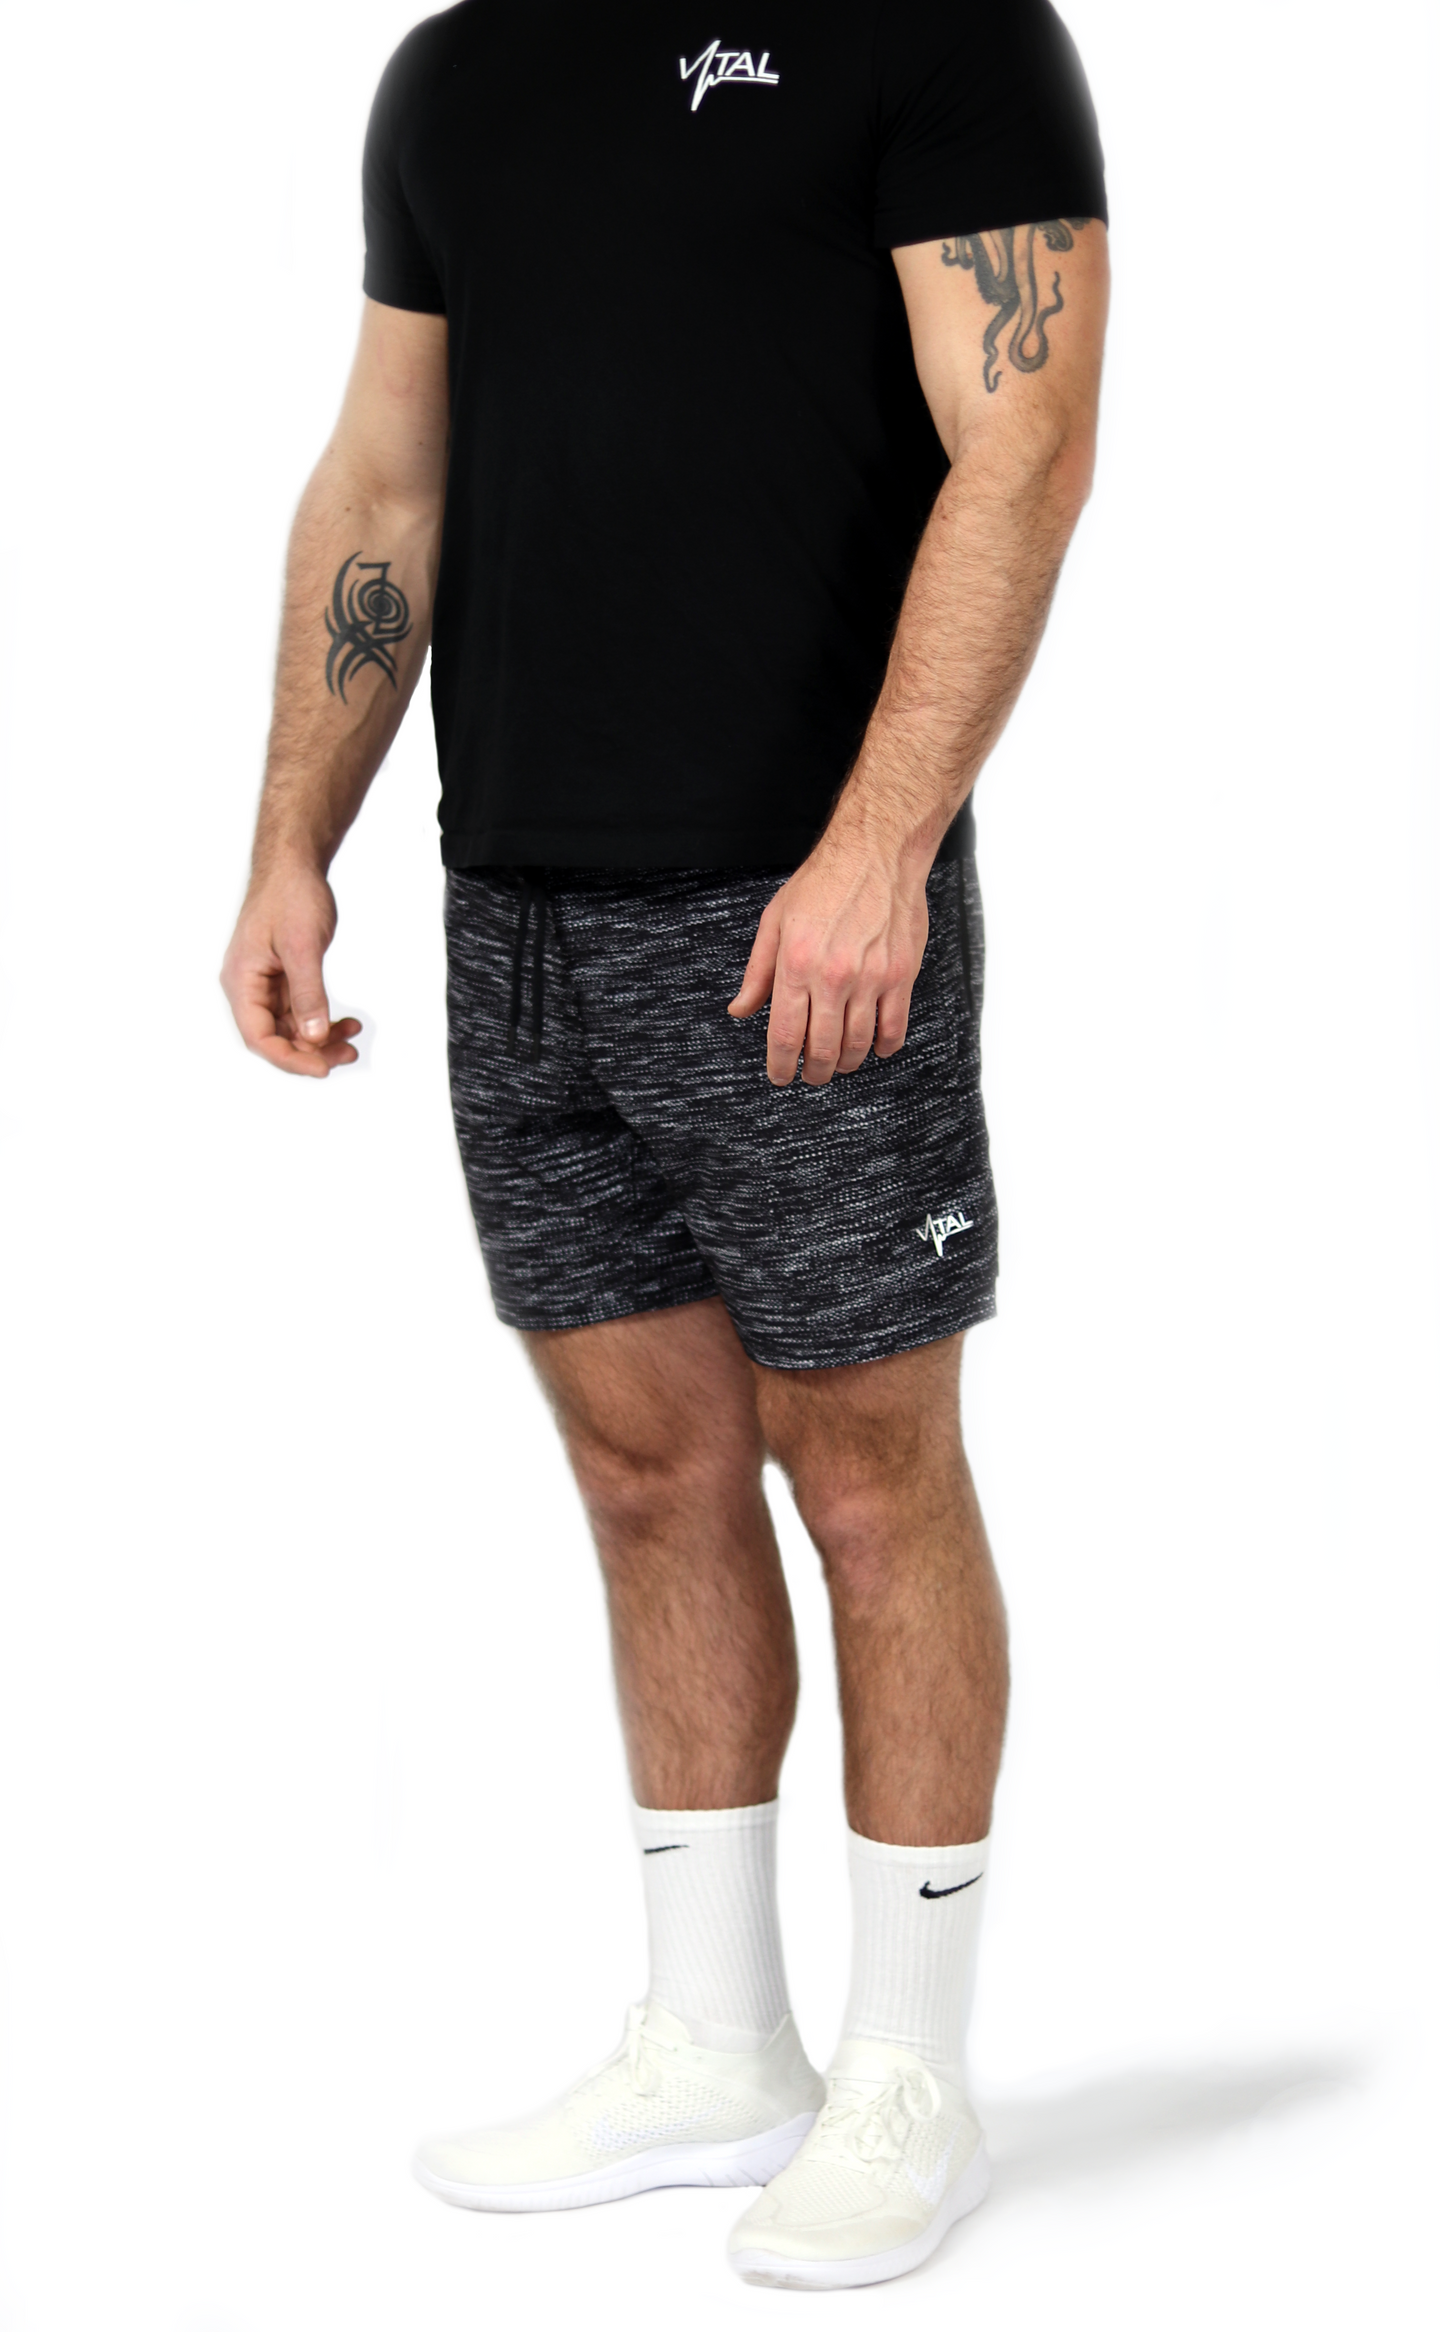 "Vital Apparel Carbon Shorts 8"" - Heather"